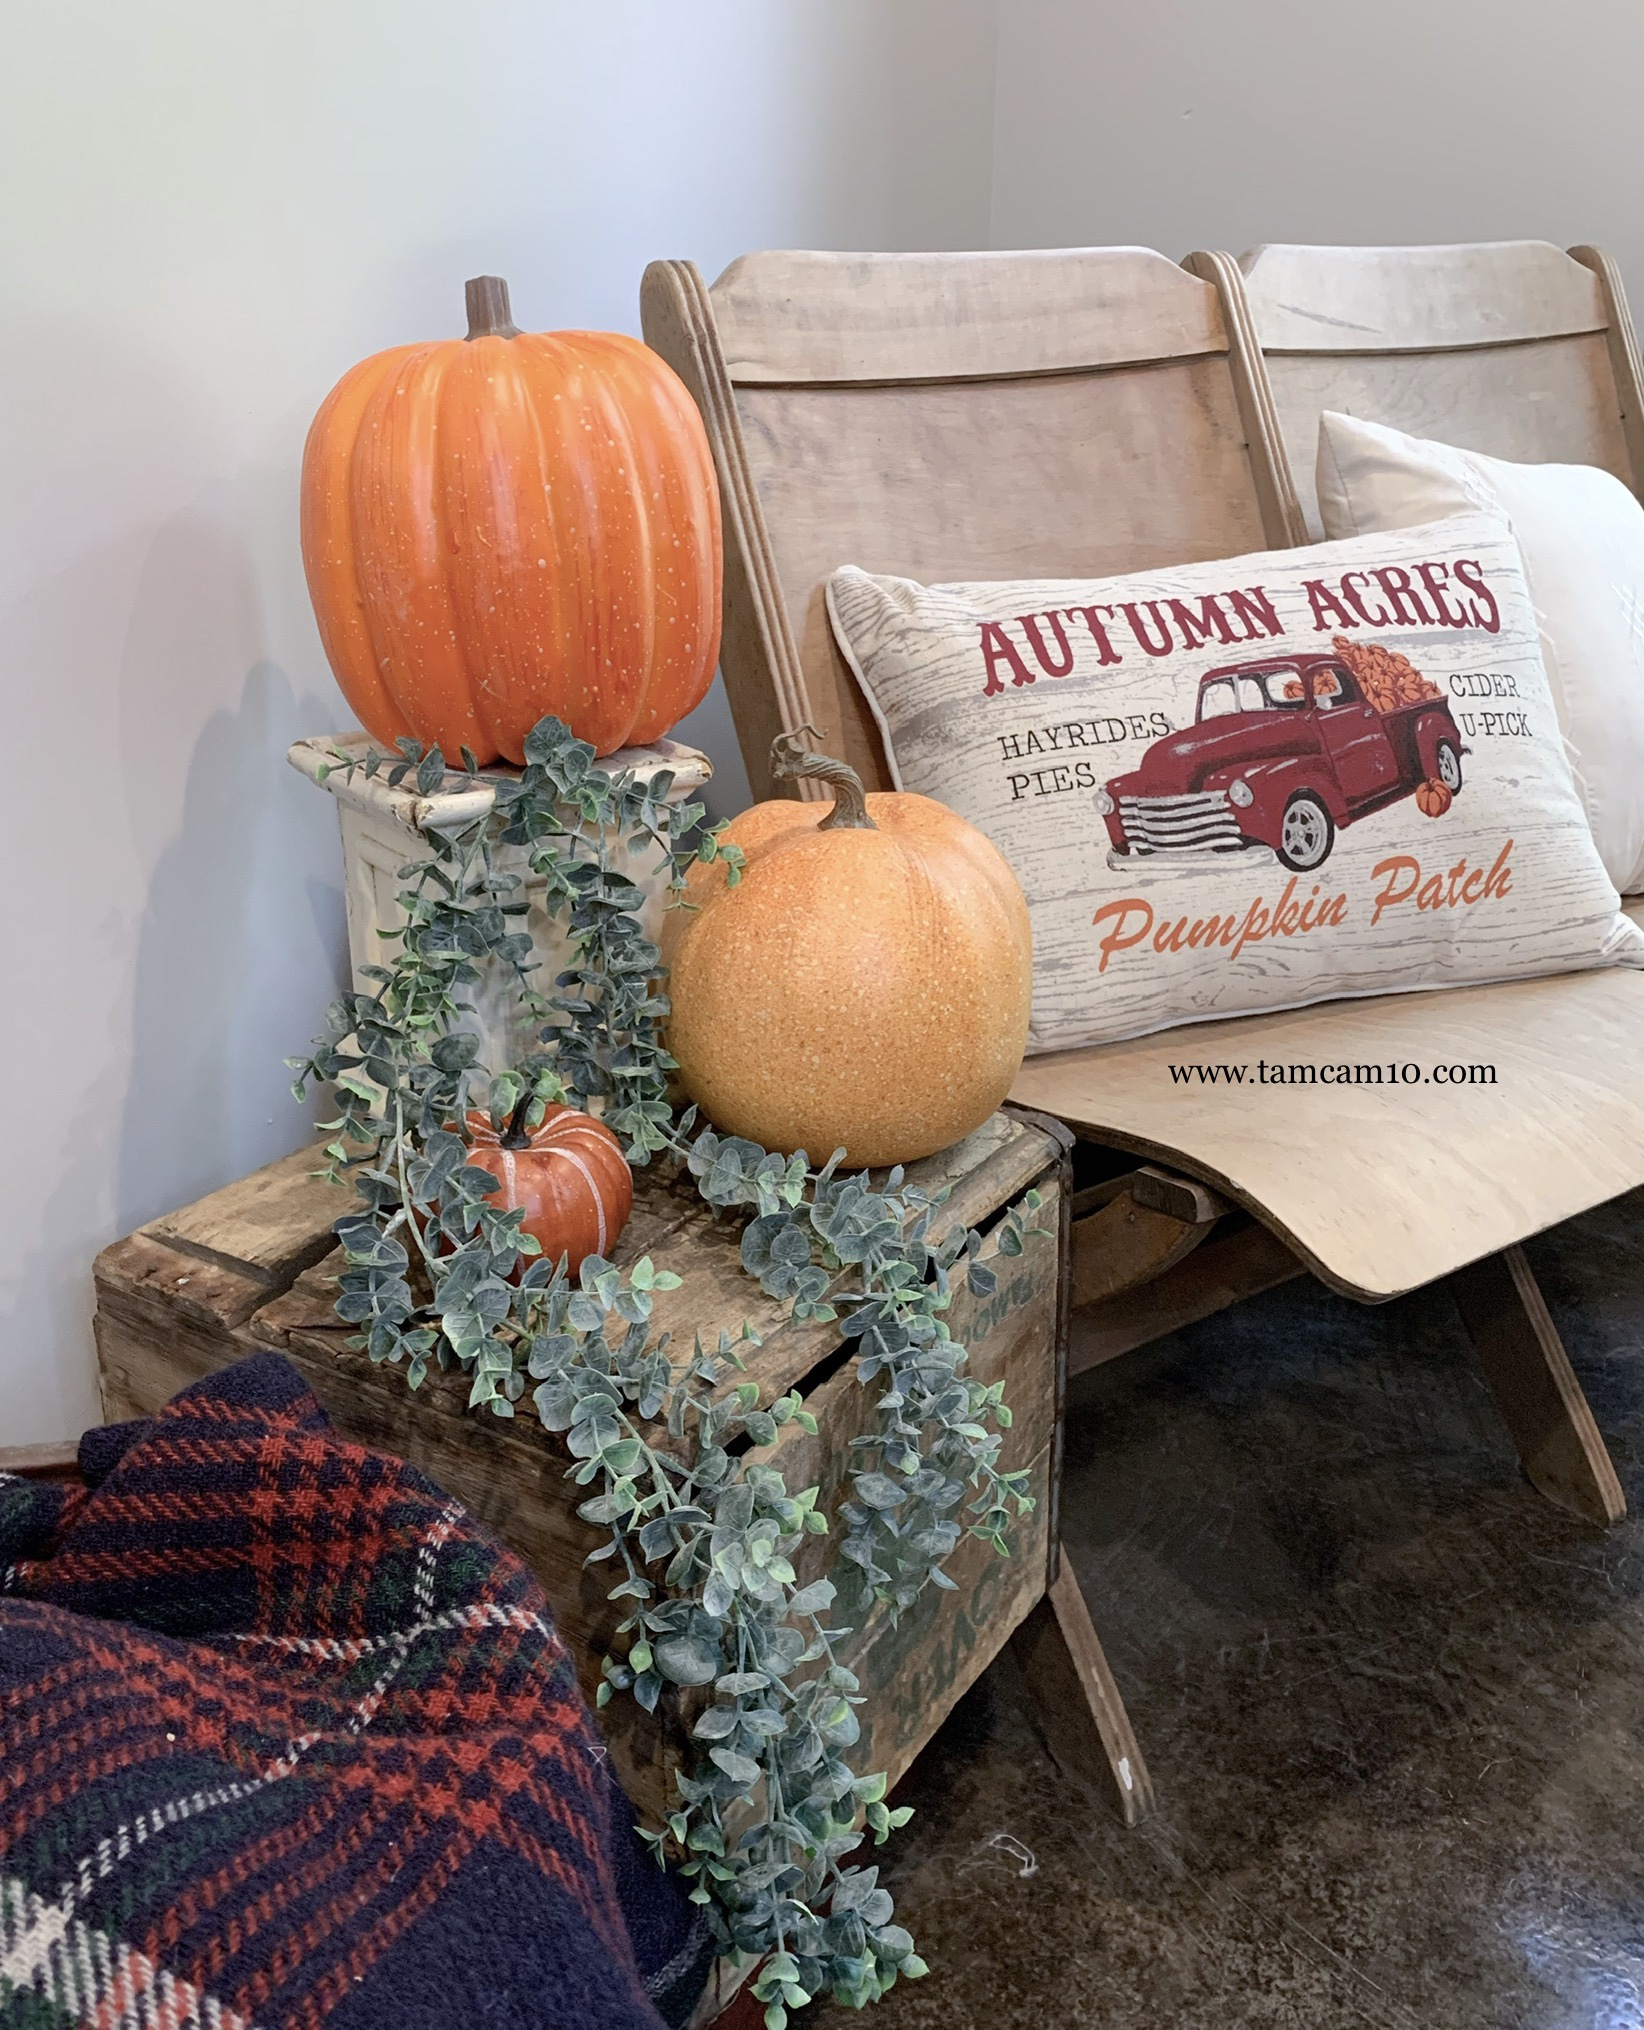 Fall Home Decor Ideas | Faux Pumpkins | Hanging Eucalyptus | Pumpkin Patch | Plaid | tamcam10 |